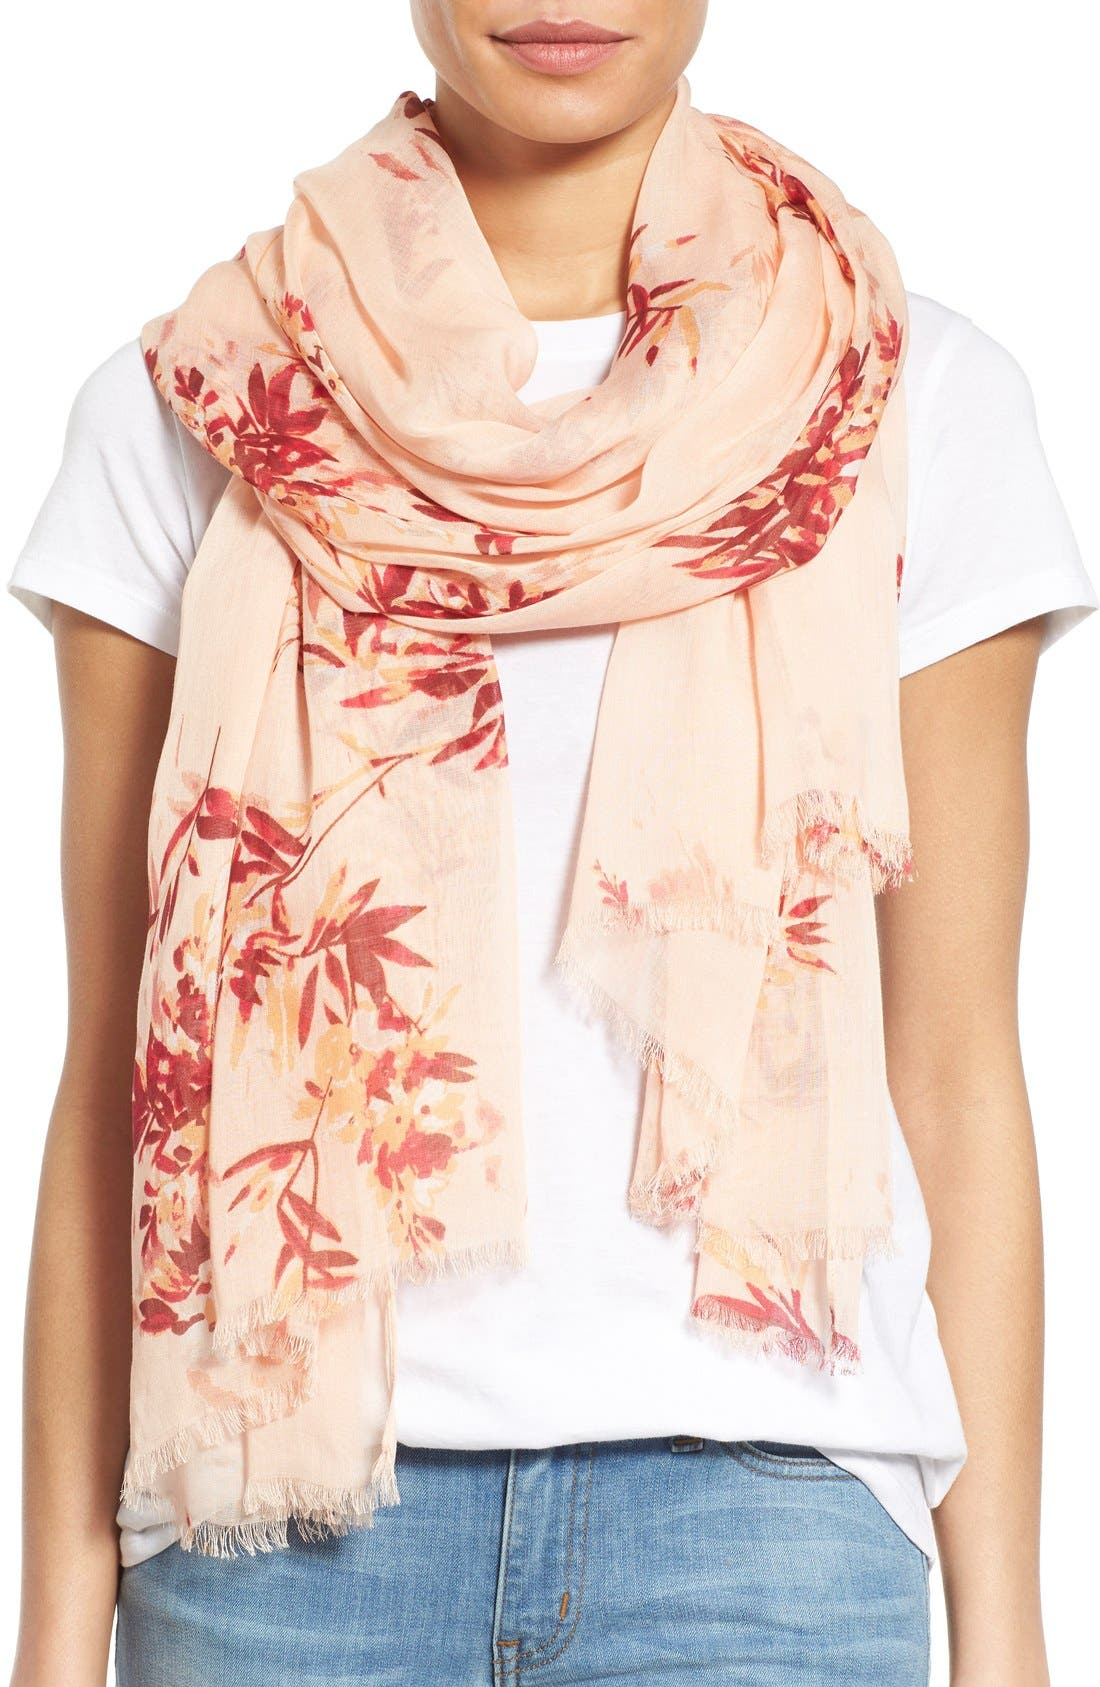 Alternate Image 1 Selected - Nordstrom 'Blurred Blossoms' Scarf